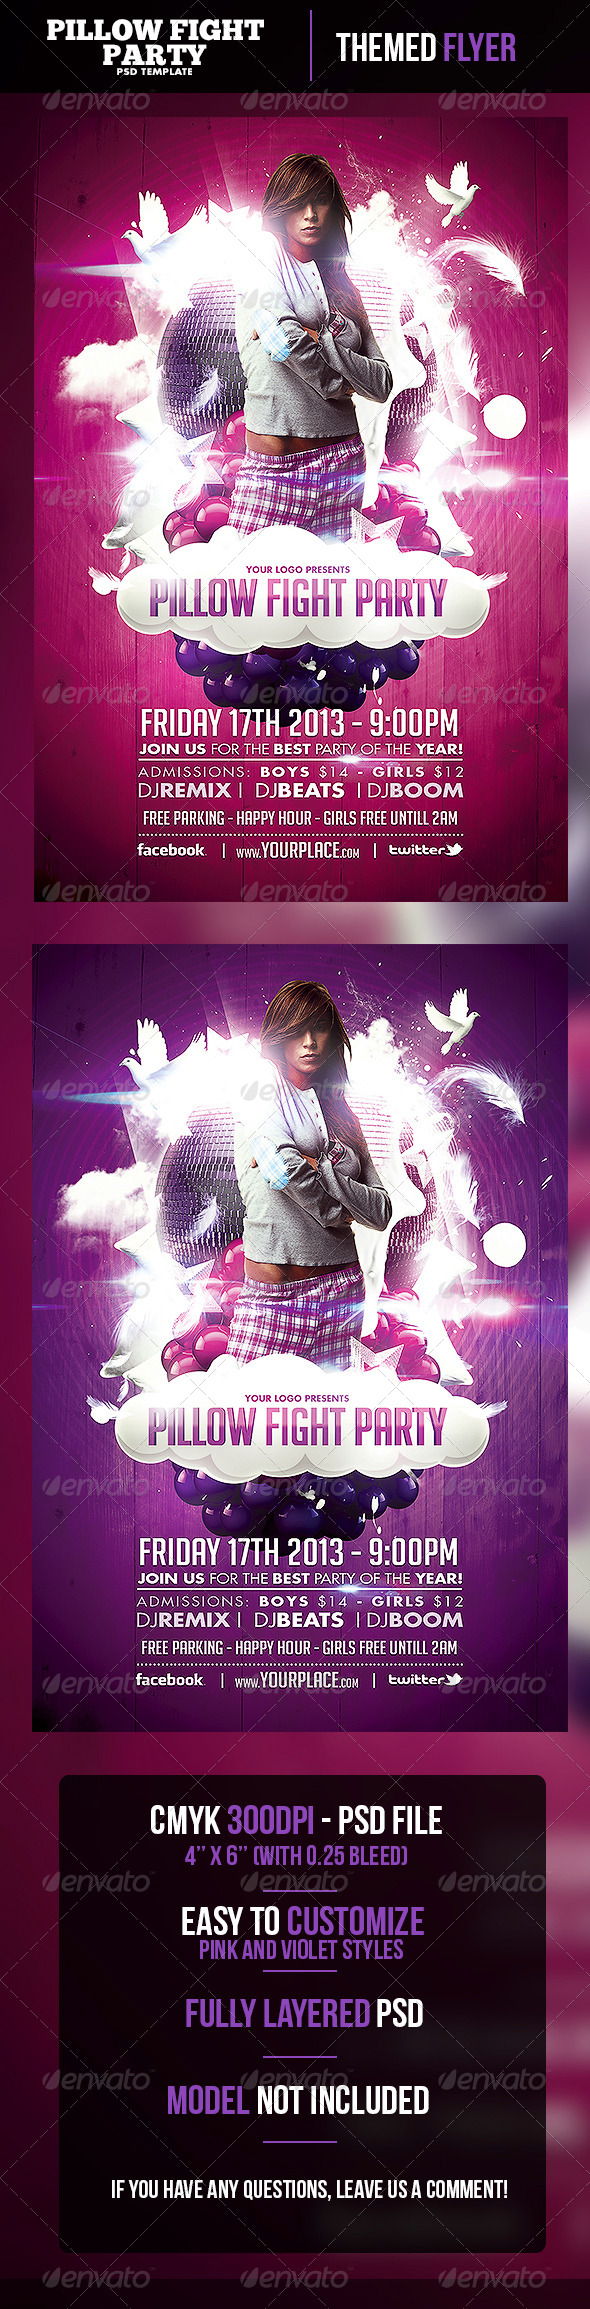 Pillow Fight Party Flyer Template - Clubs & Parties Events